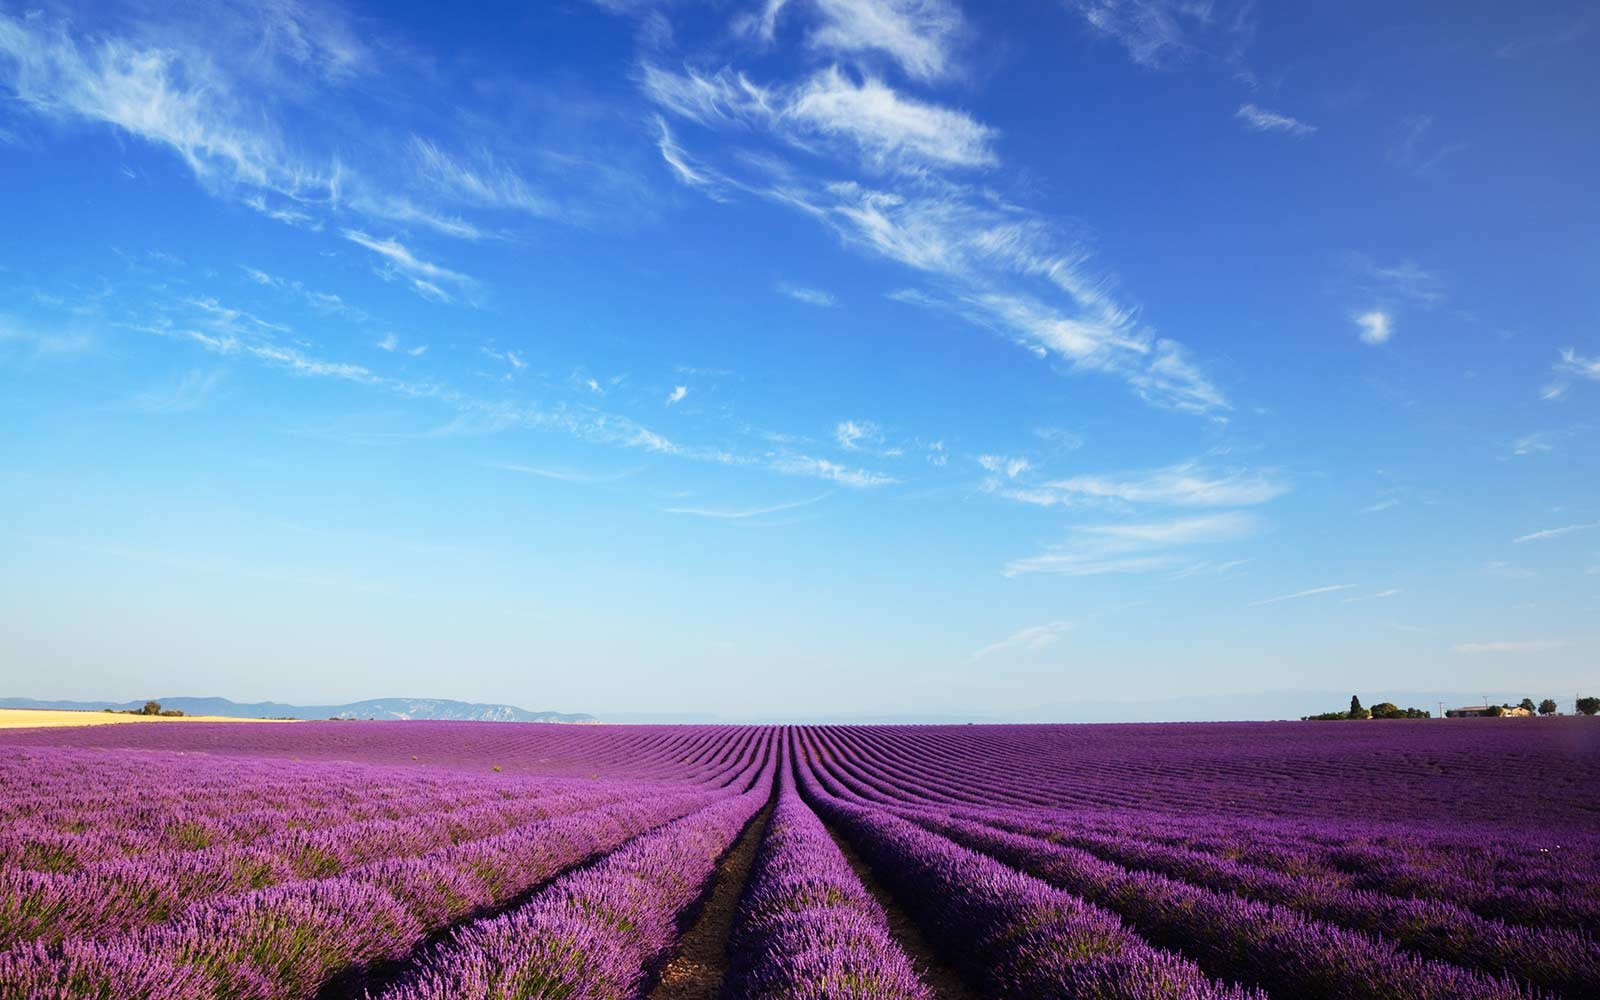 Lavender field in Valensole, Haute Provence, France.